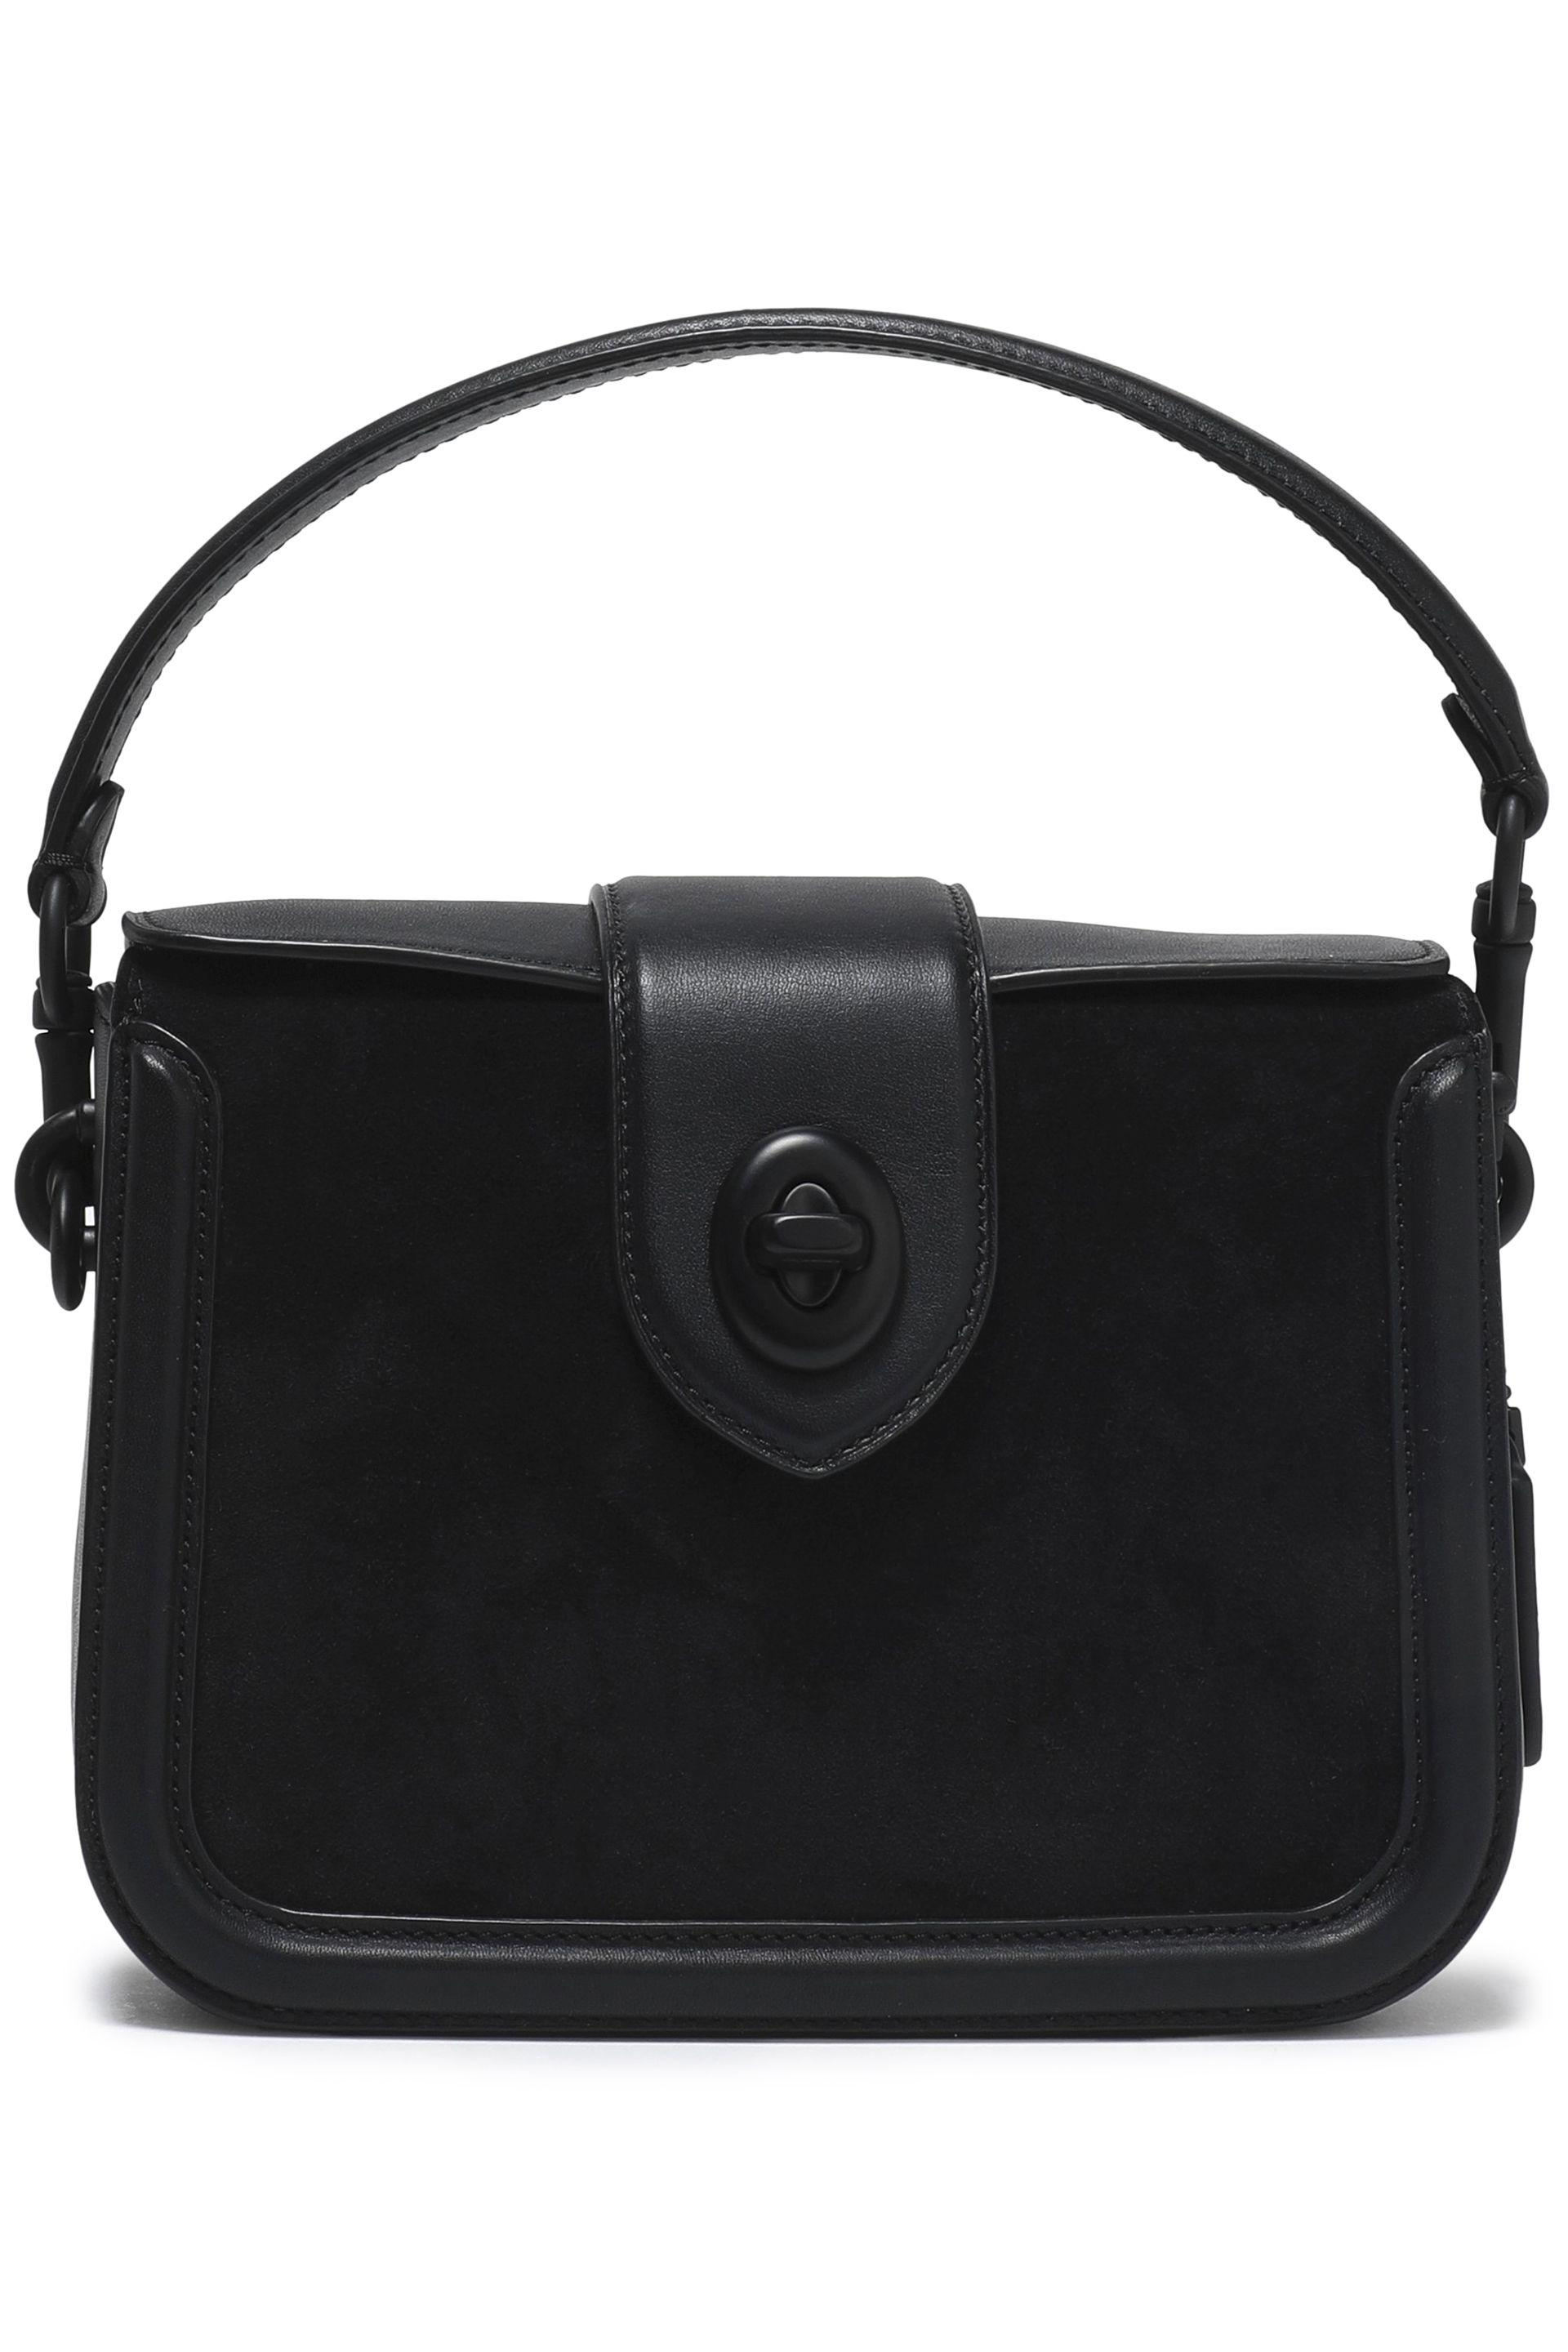 dbf39a8b53 ... real coach leather and suede shoulder bag in black lyst 025d9 632ea